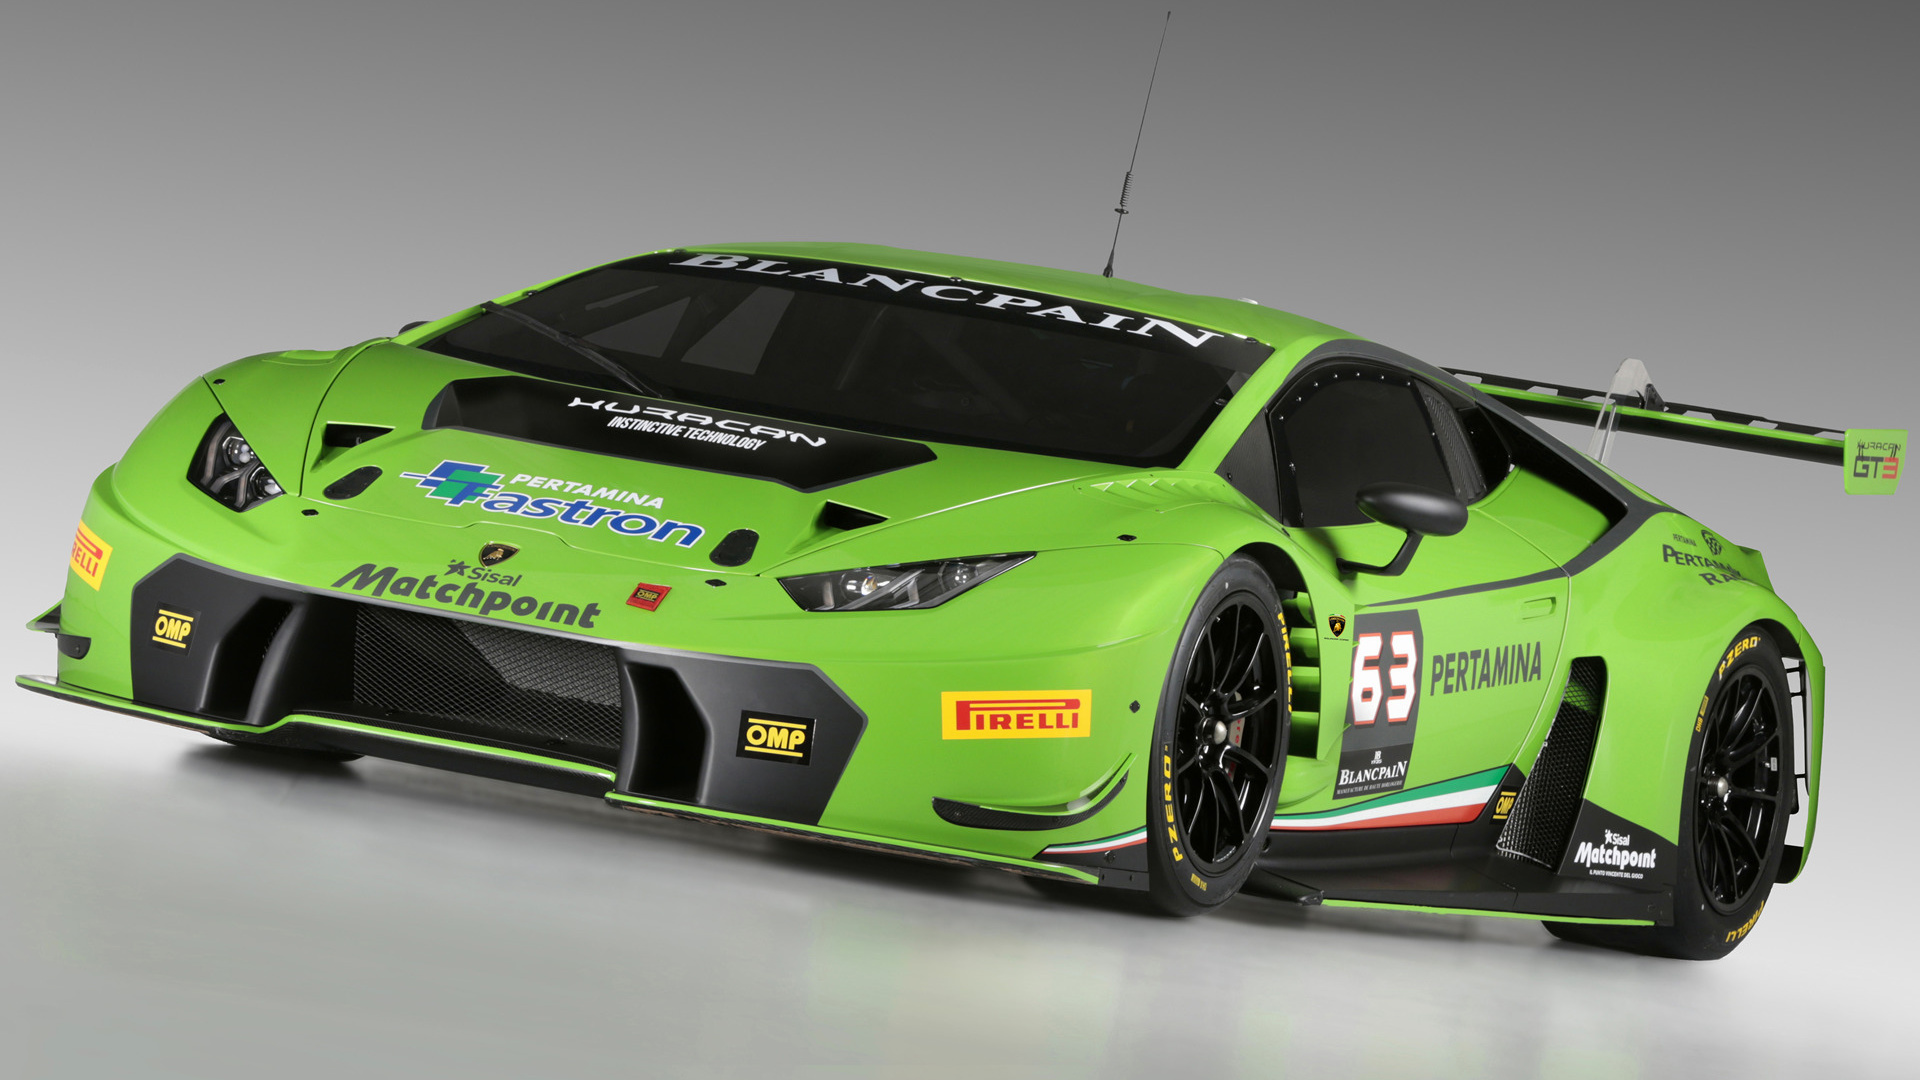 lamborghini huracan gt3 wallpaper 2015 lamborghini huracan gt3 studio 3 1024x768 wallpaper. Black Bedroom Furniture Sets. Home Design Ideas